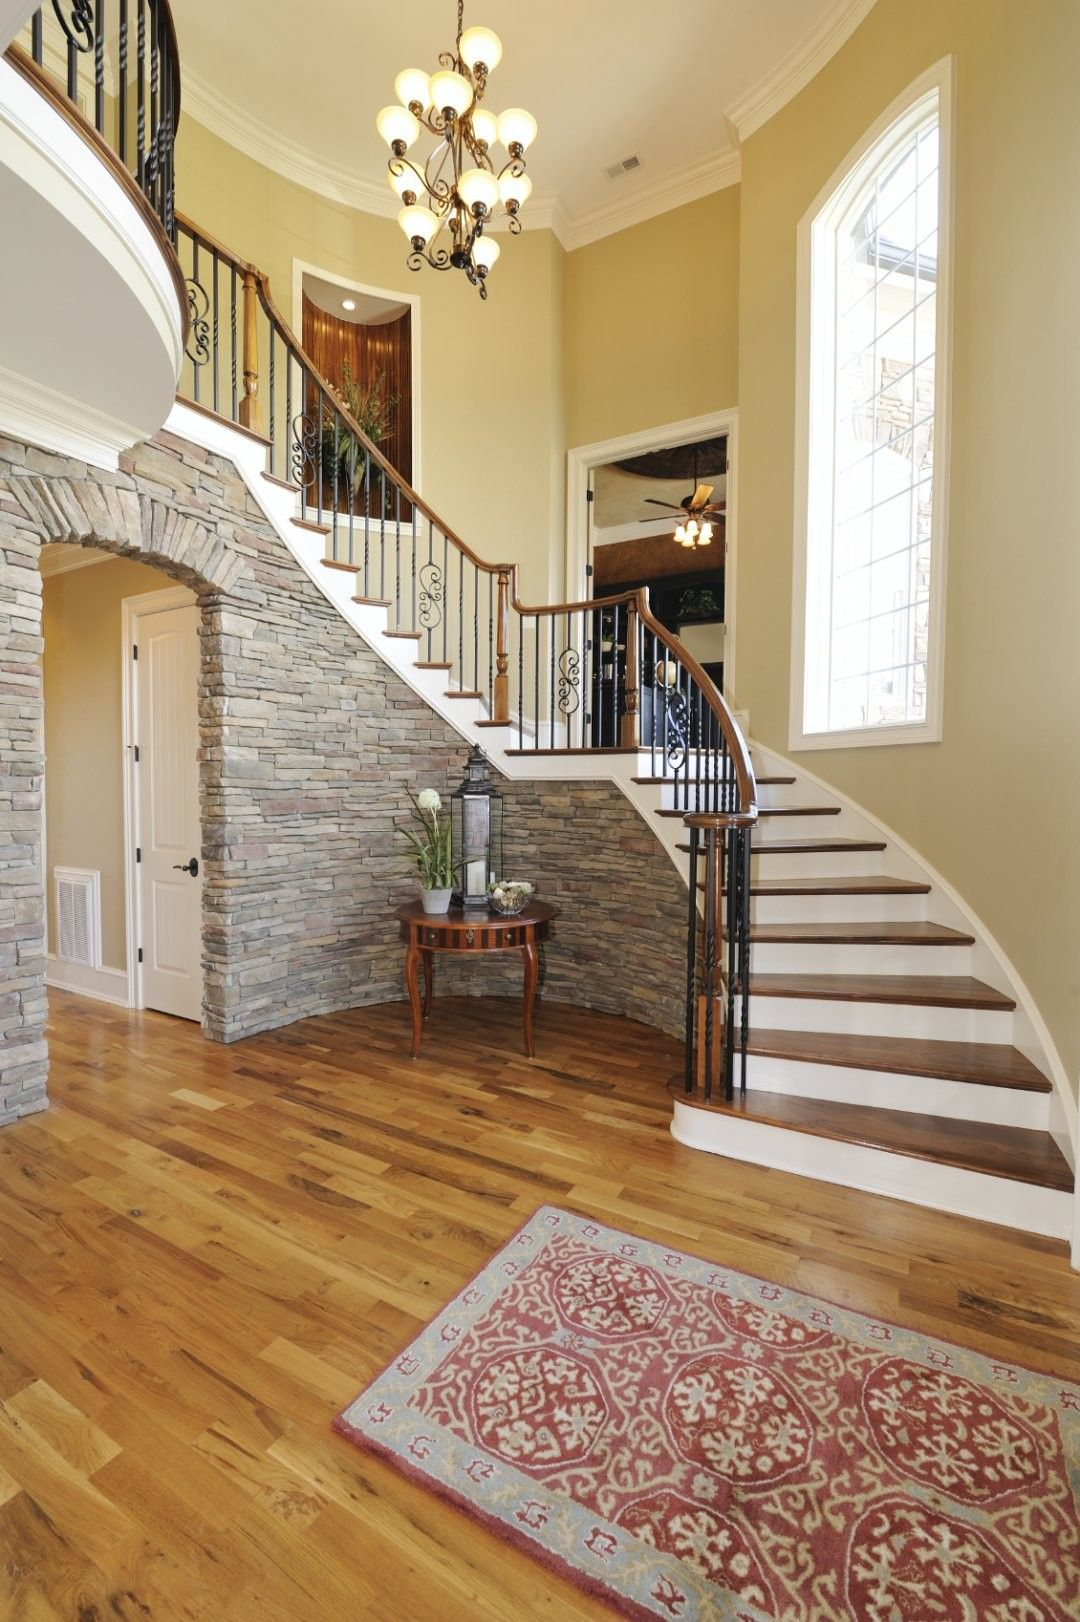 Best 30 Creative Stair Decoration Ideas Stair Decor Faux Stone Walls Foyer Decorating 400 x 300